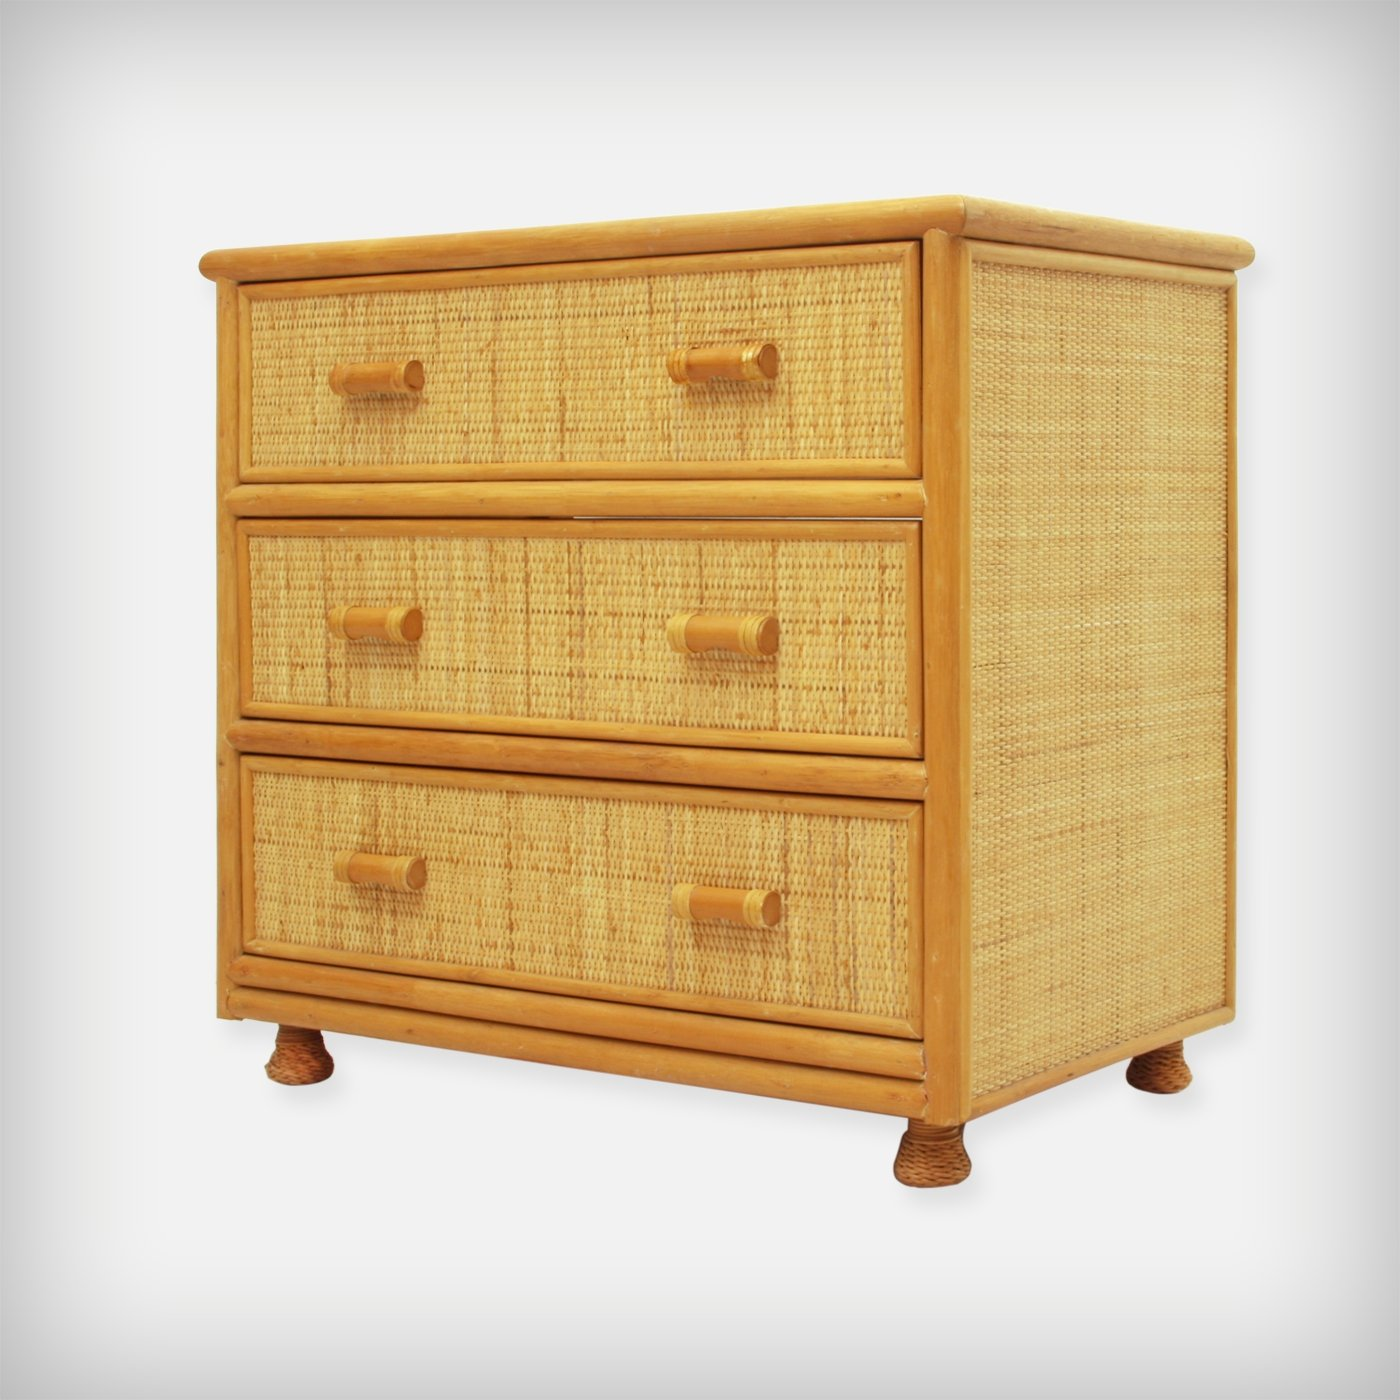 Spanish Rattan Bamboo Chest Of Drawers 1970s 89659